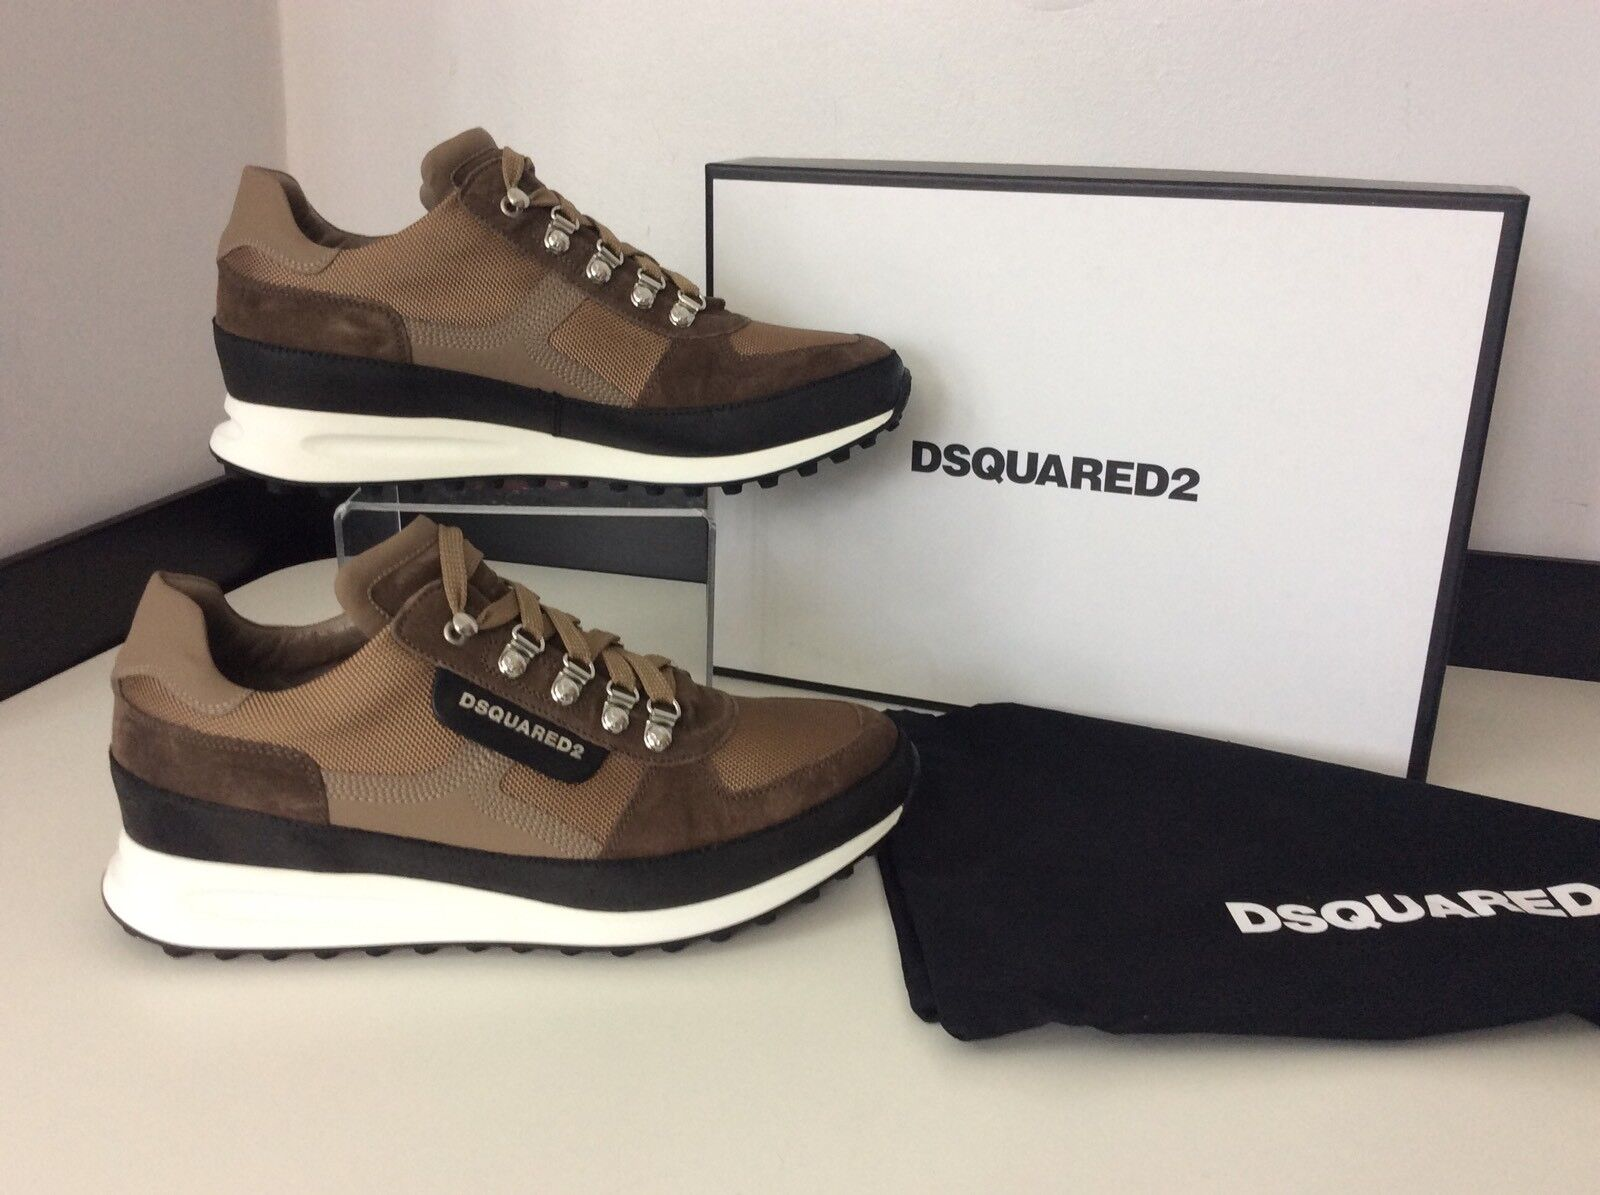 Dsquared2 Ds2 Sneakers, Runners, Eu43, Beige, Trainers NEW RRP